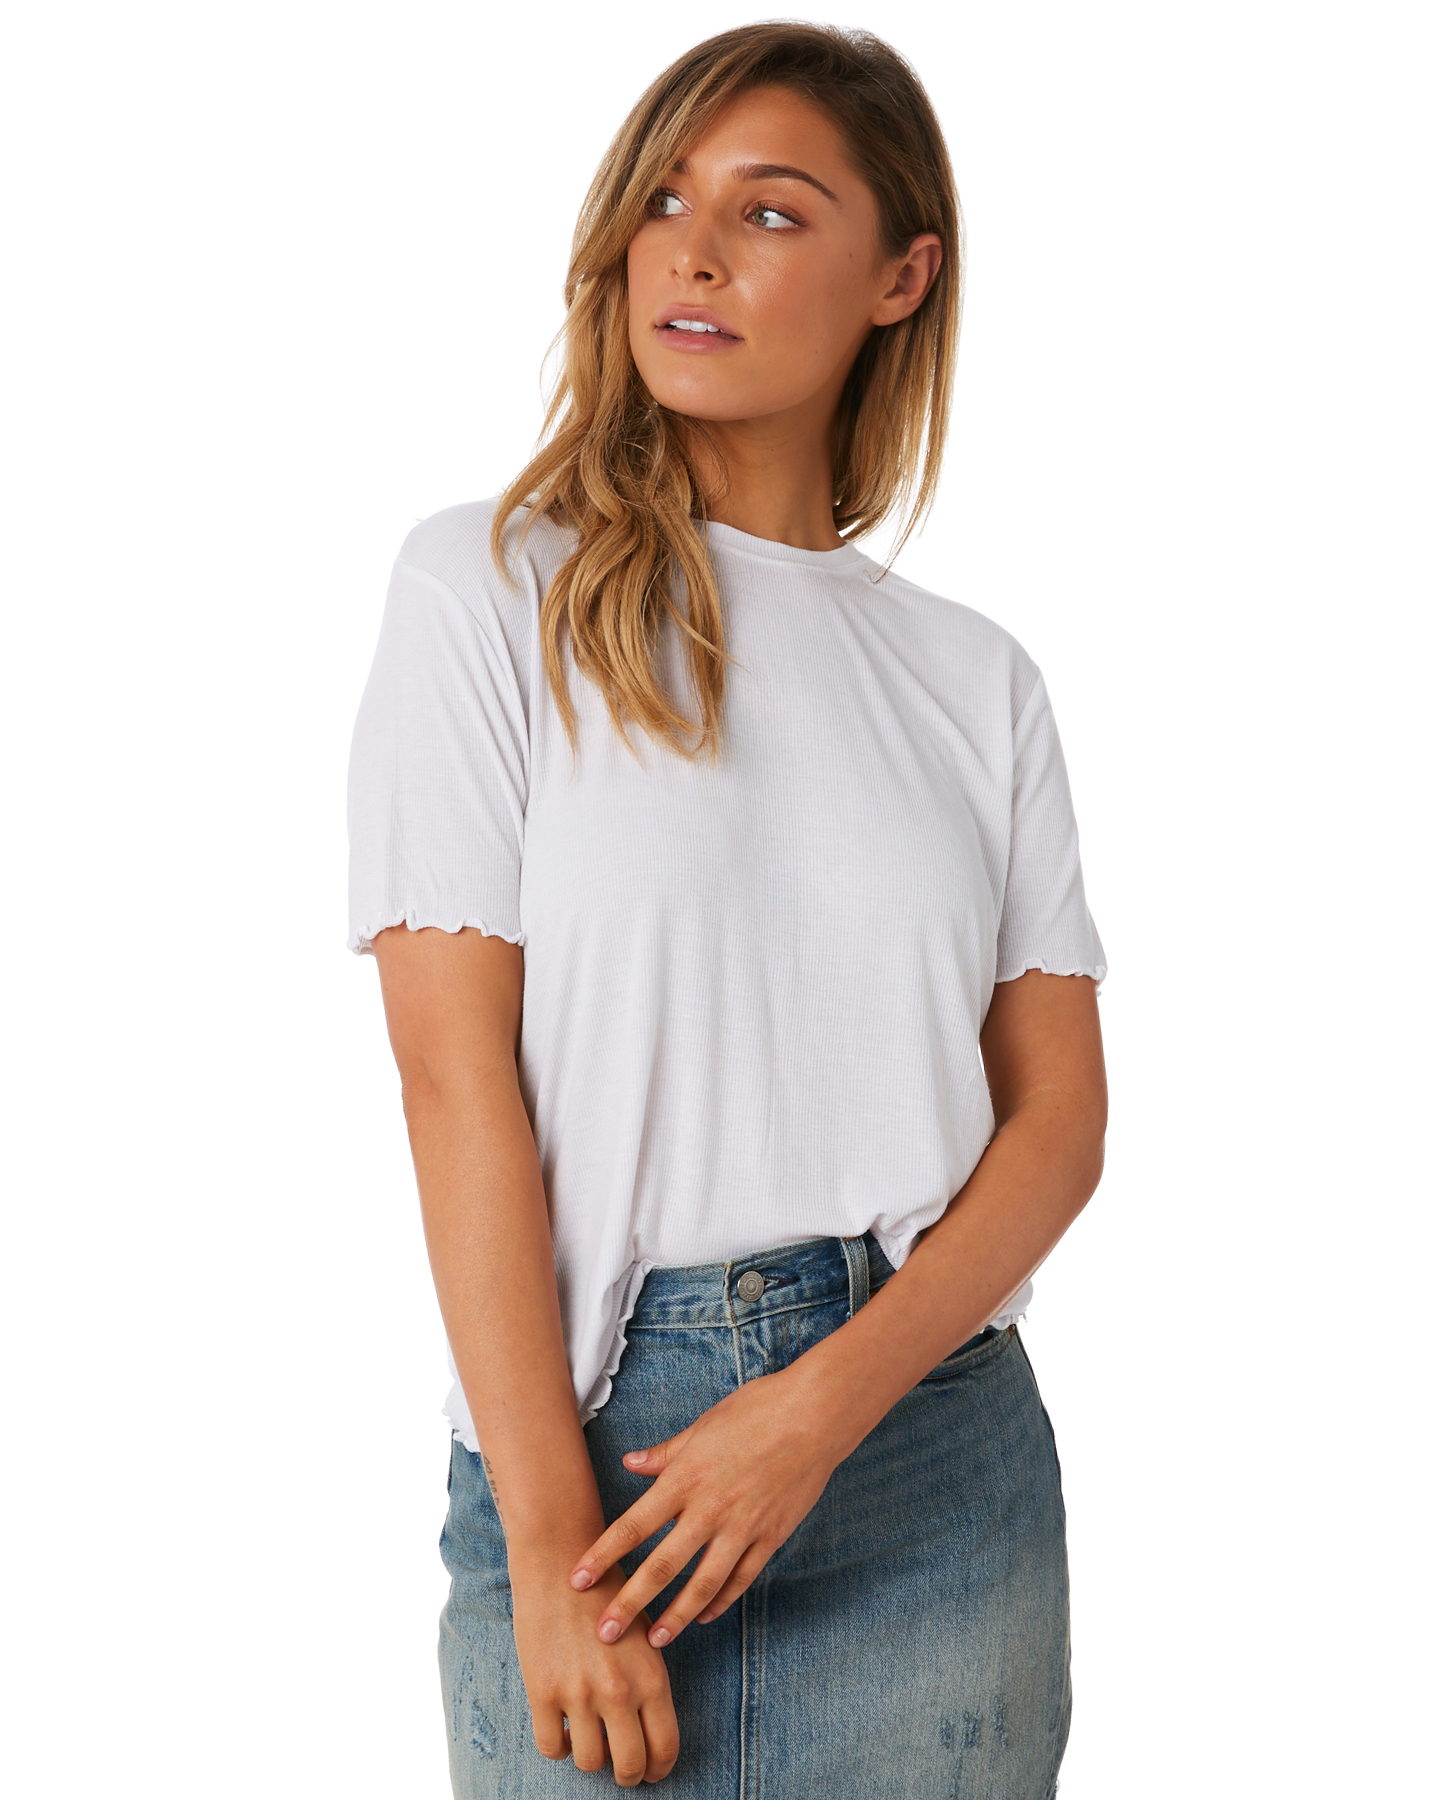 a2f9c90ed6 The Bare Road Women s Sorrento Tee Short Sleeve Cotton Stretch Spandex White